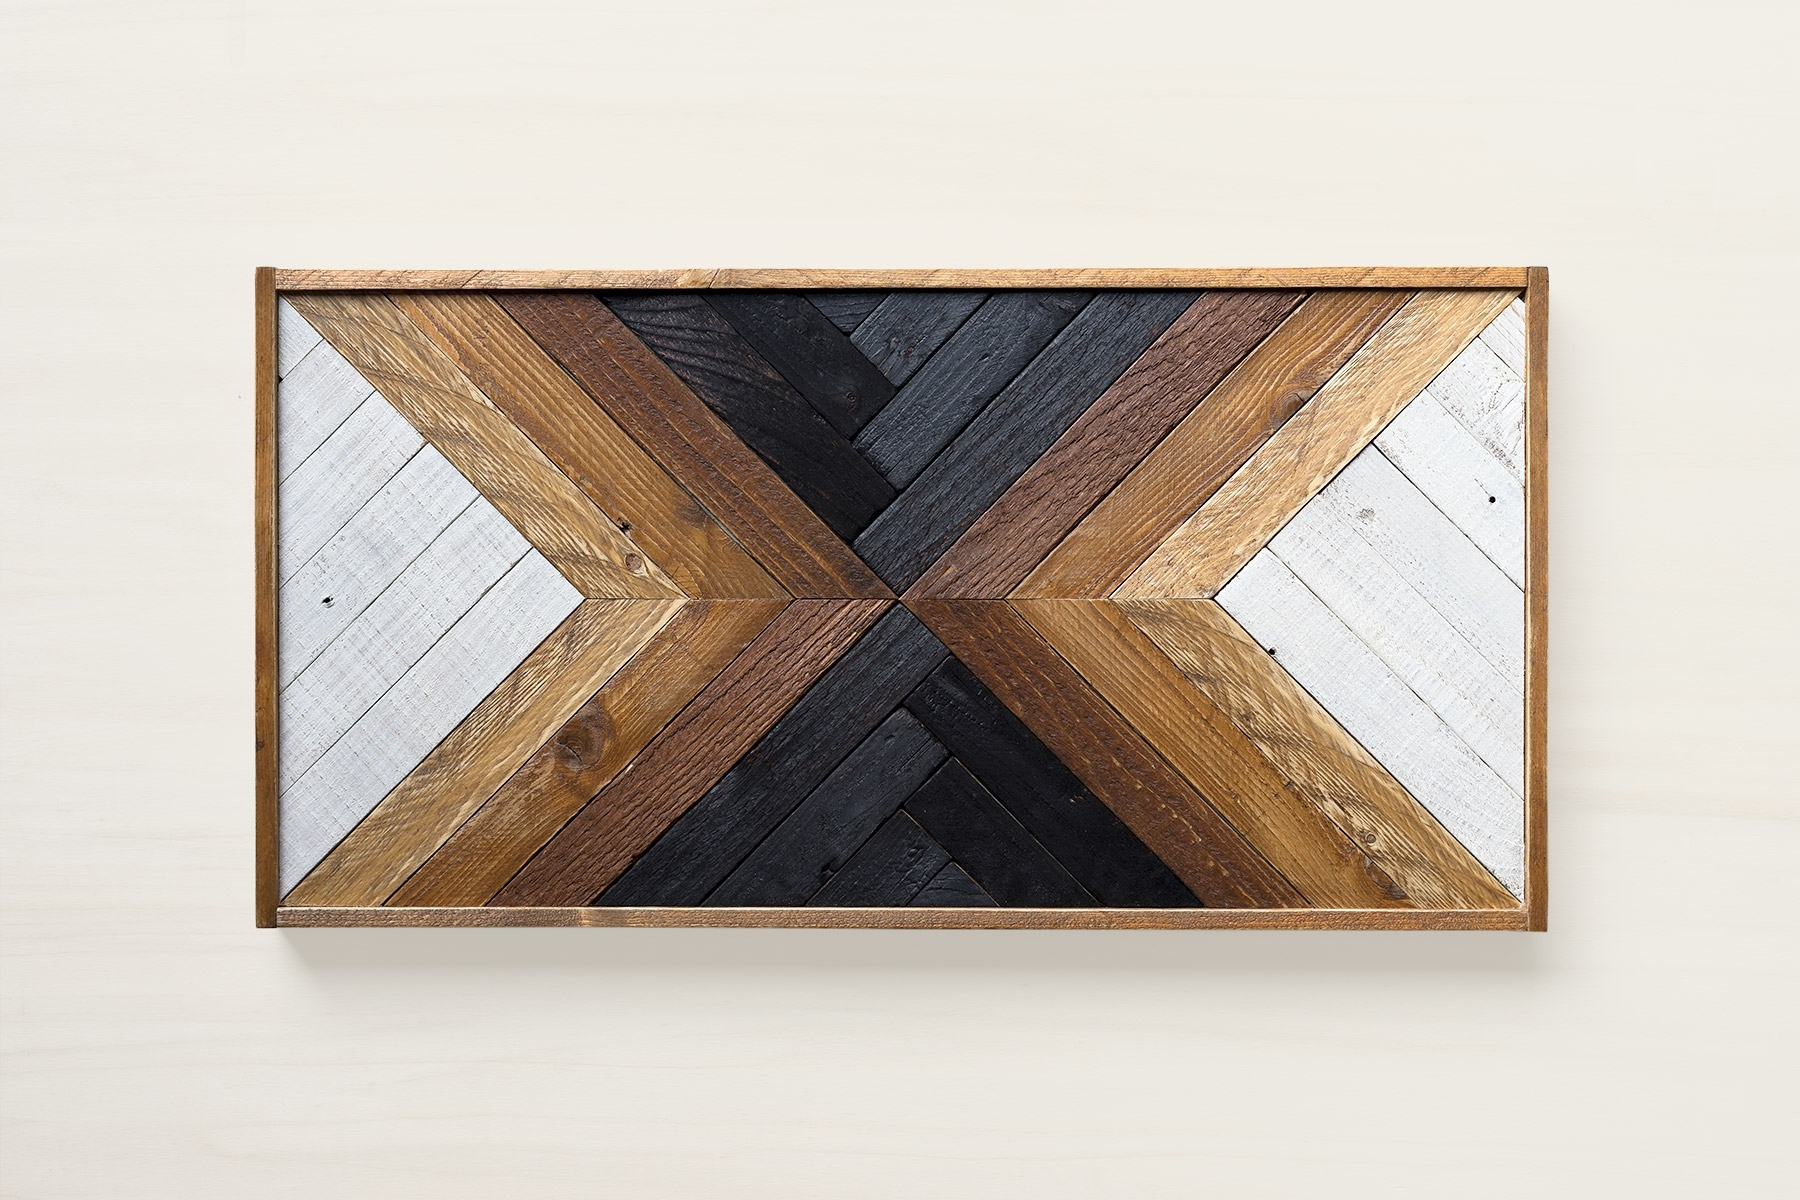 Most Recent Reclaimed Wood Wall Art Pertaining To Maka, Reclaimed Wood Wall Art, Geometric Wood Art, Art Deco Furniture (View 5 of 15)